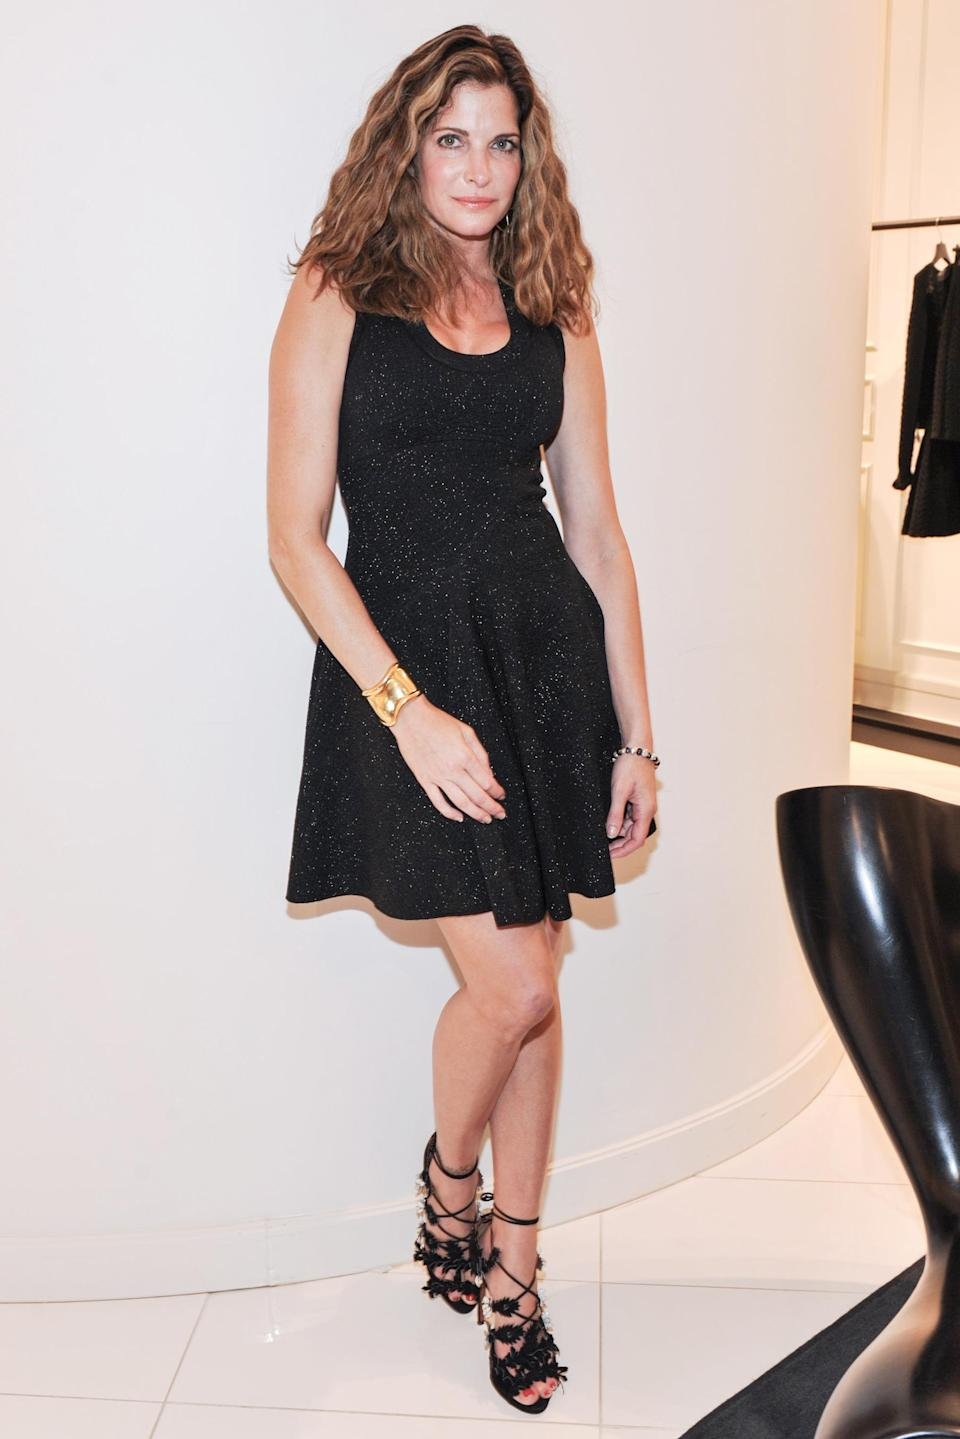 <p>She's dabbled in acting, appearing in the 2000 film <em>Pollock</em> and on an episode of <em>Law & Order: Criminal Intent</em>. Seymour has also worked as a contributing fashion editor at <em>Interview</em> and continued to model, most recently for Ferragamo, Hermes, and Valentino.</p>